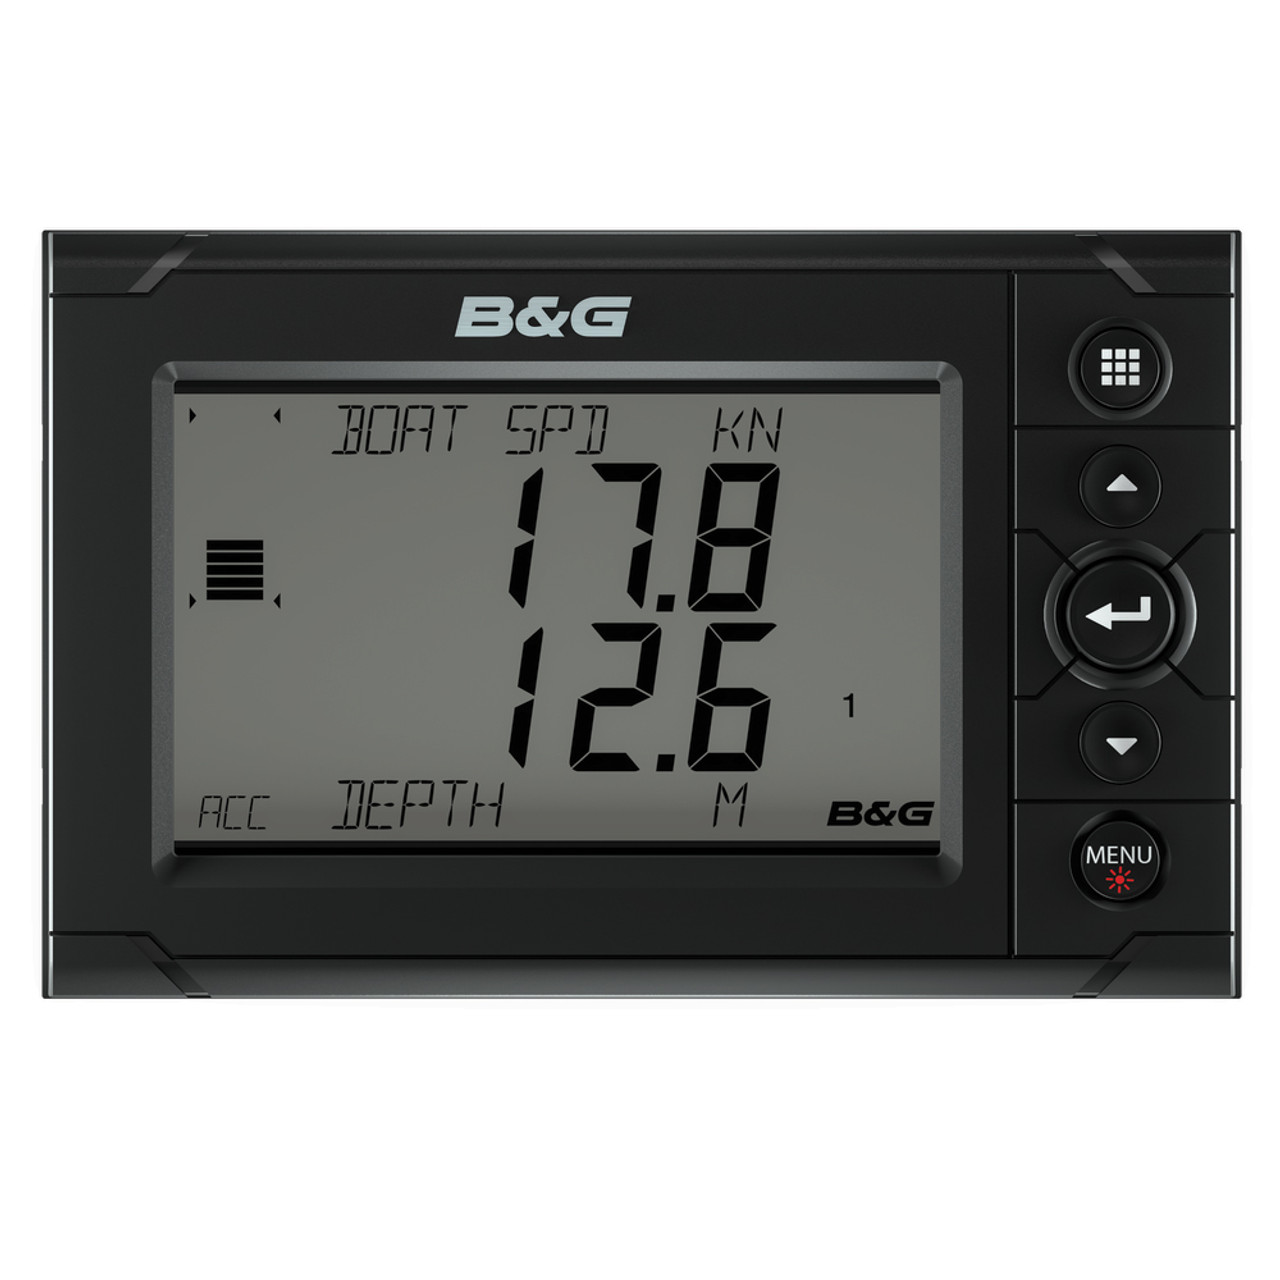 B&G Race Display [000-11543-001]